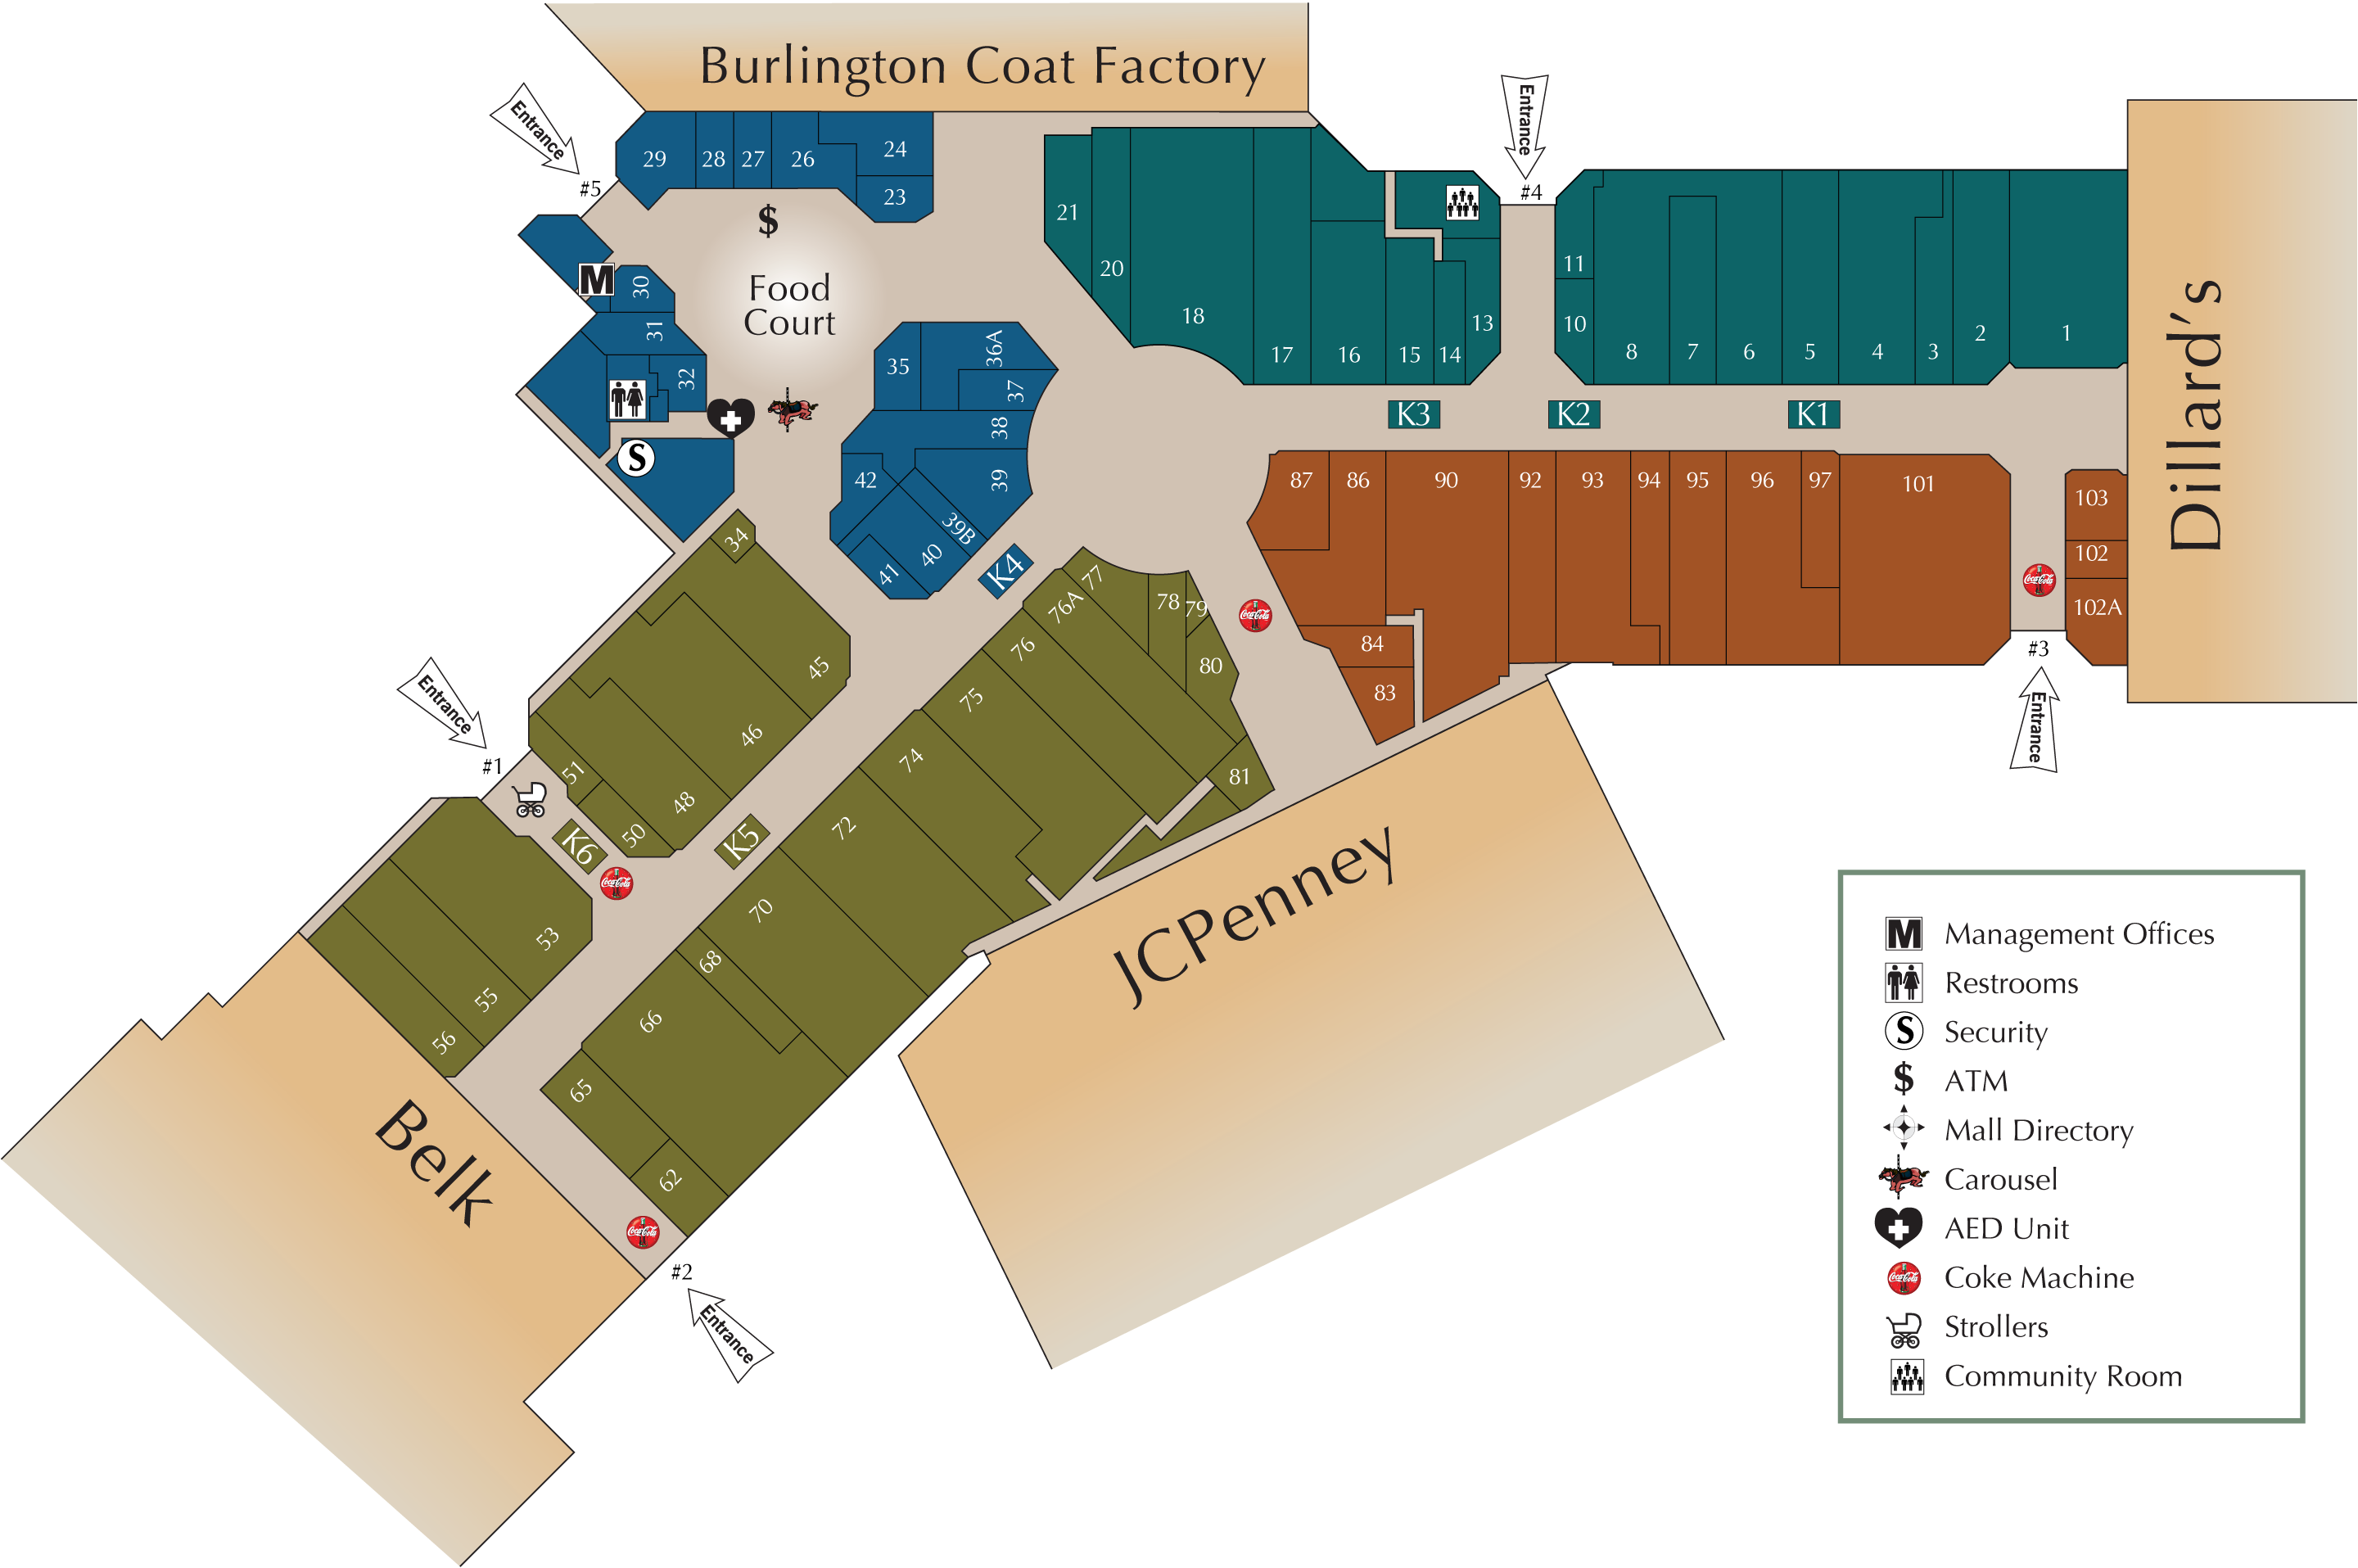 Wiregrass Mall Map Wiregrass Mall Map | compressportnederland Wiregrass Mall Map